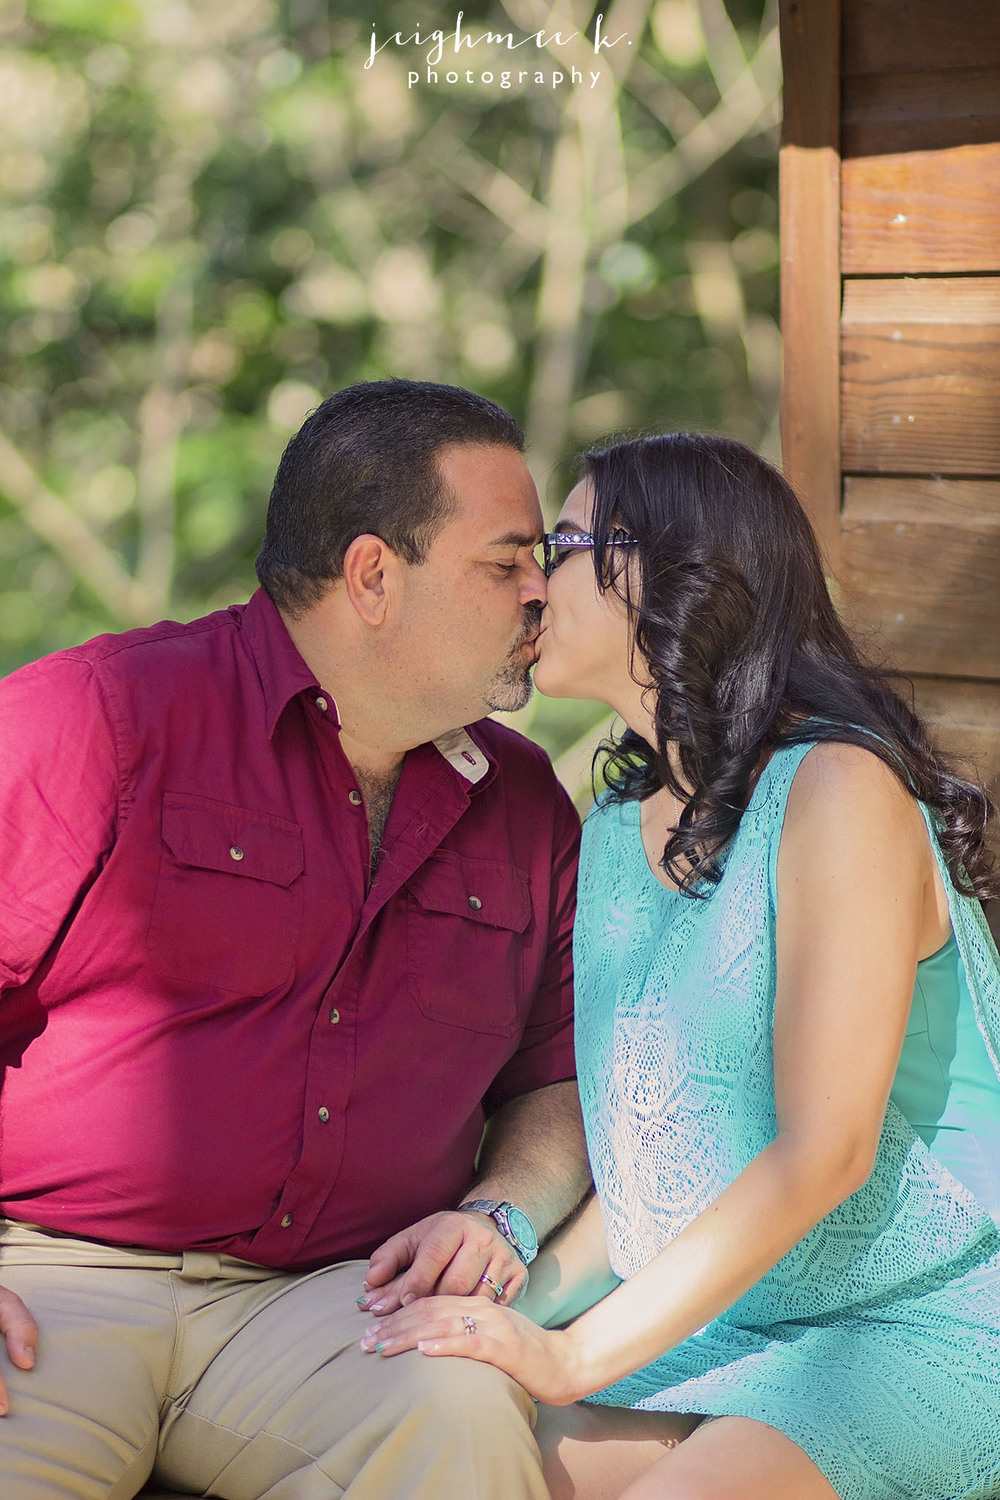 Caguas Botanical Garden Engagement Session 9.jpg